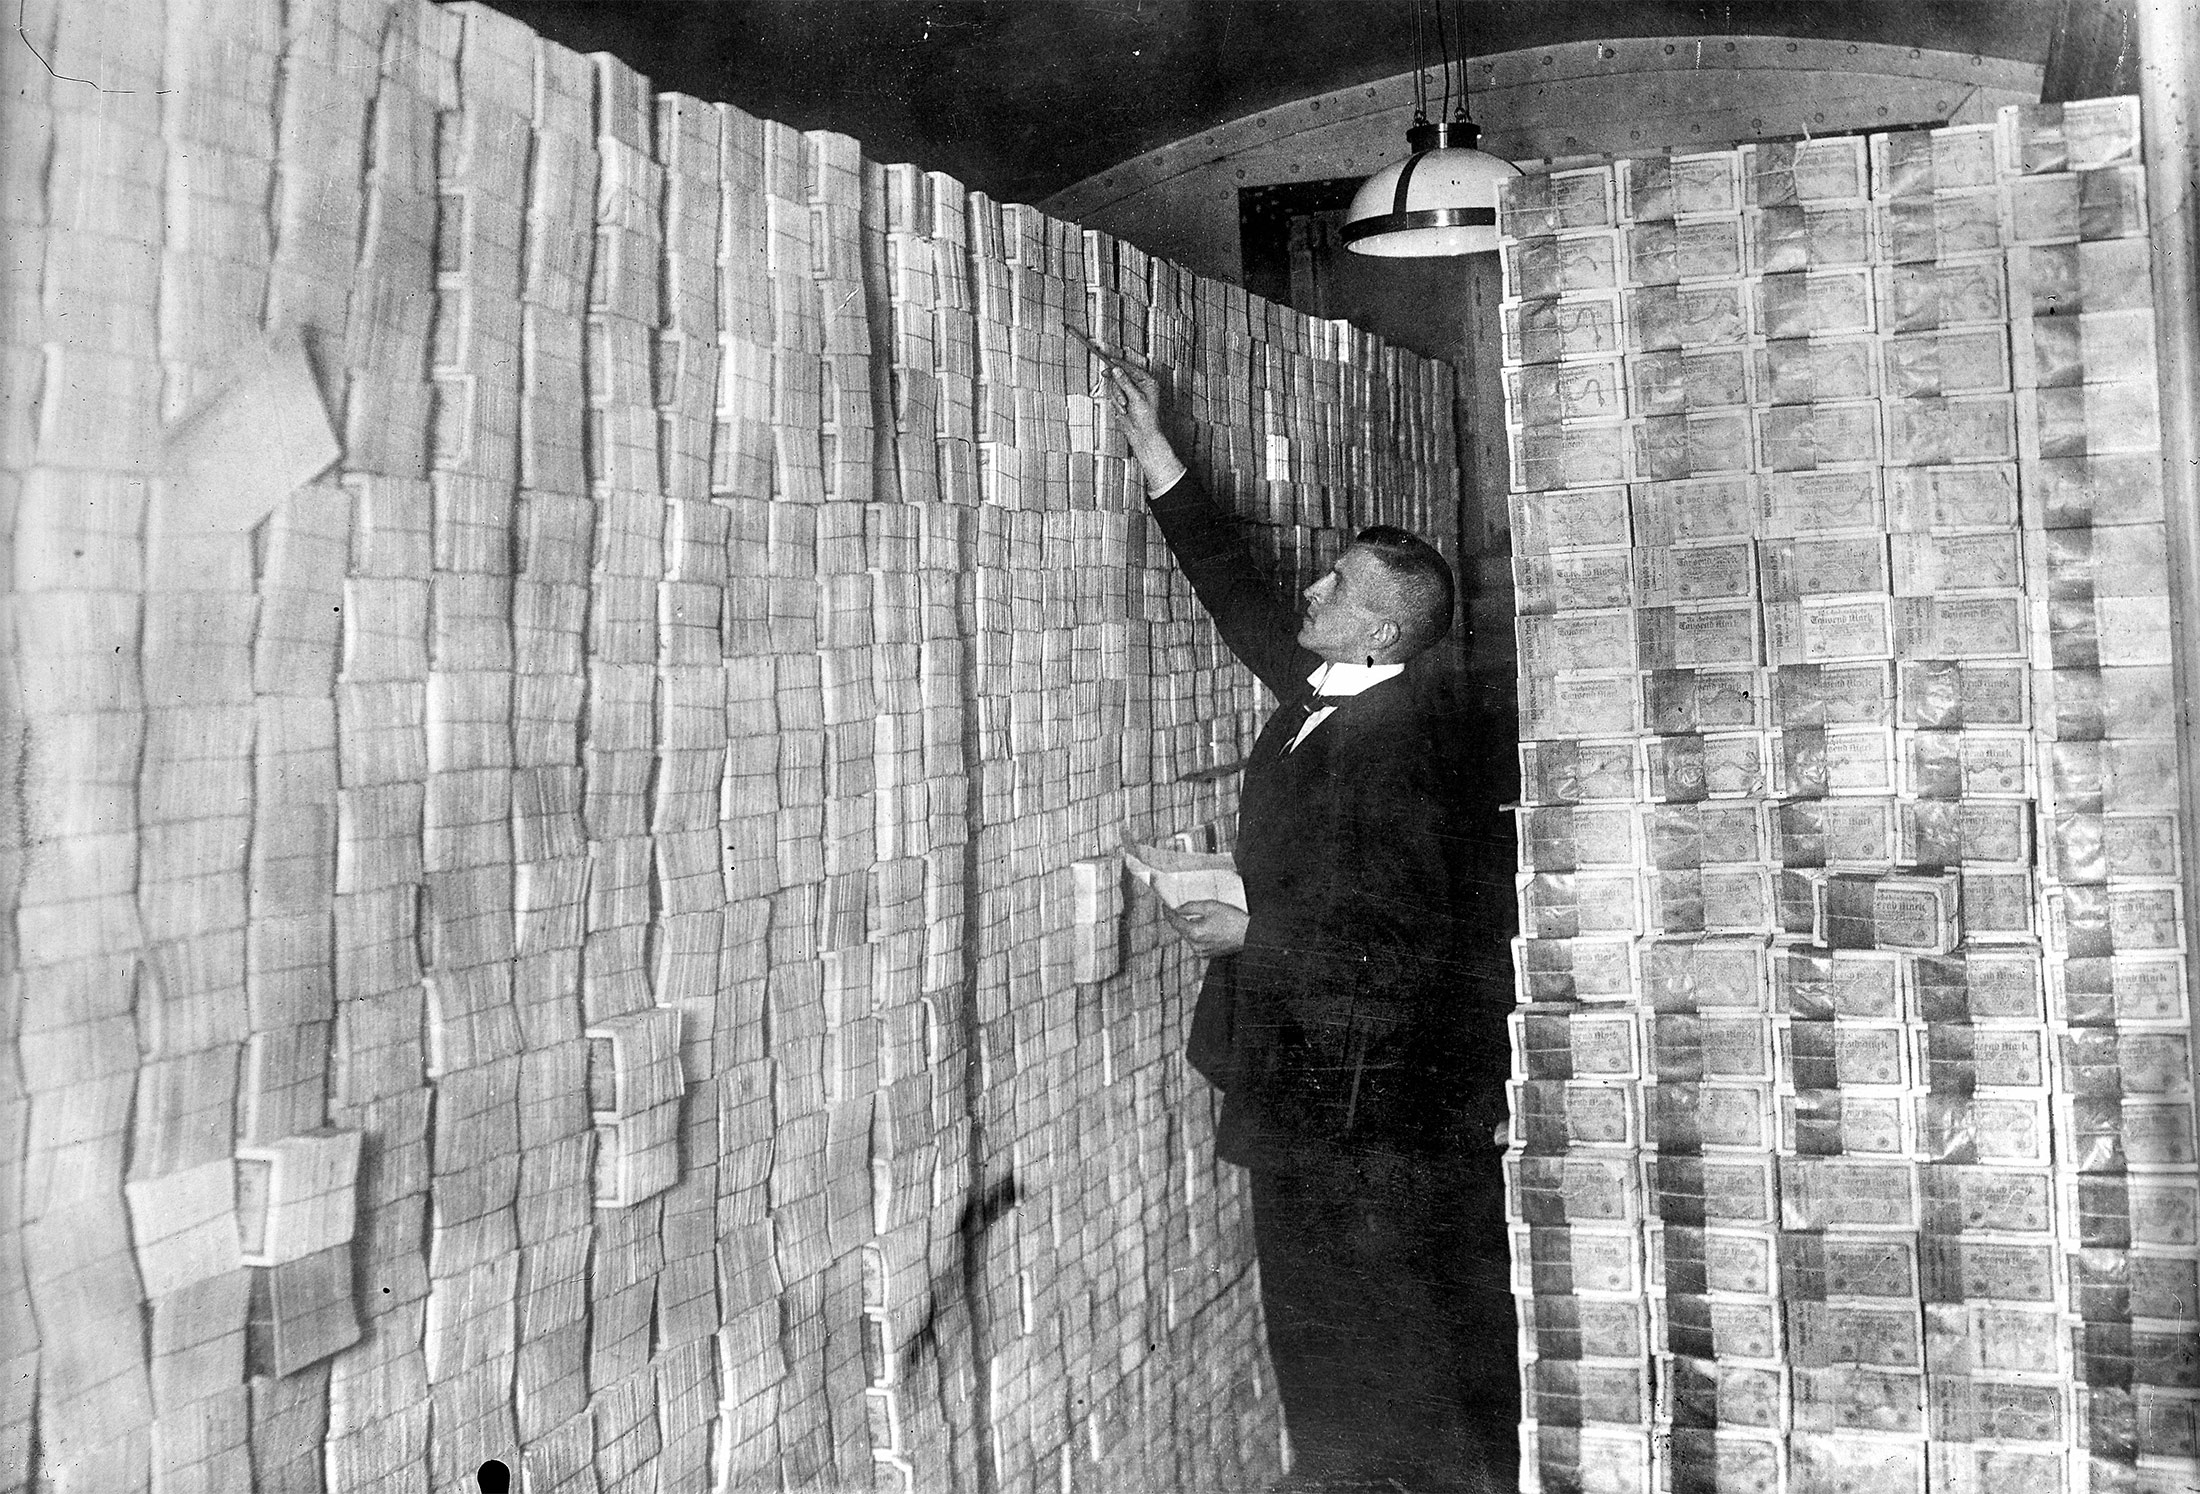 A basement of a bank full of banknotesat the time of the Mark devaluationduring the economic crisisin Weimar Republic (Germany), 1923.